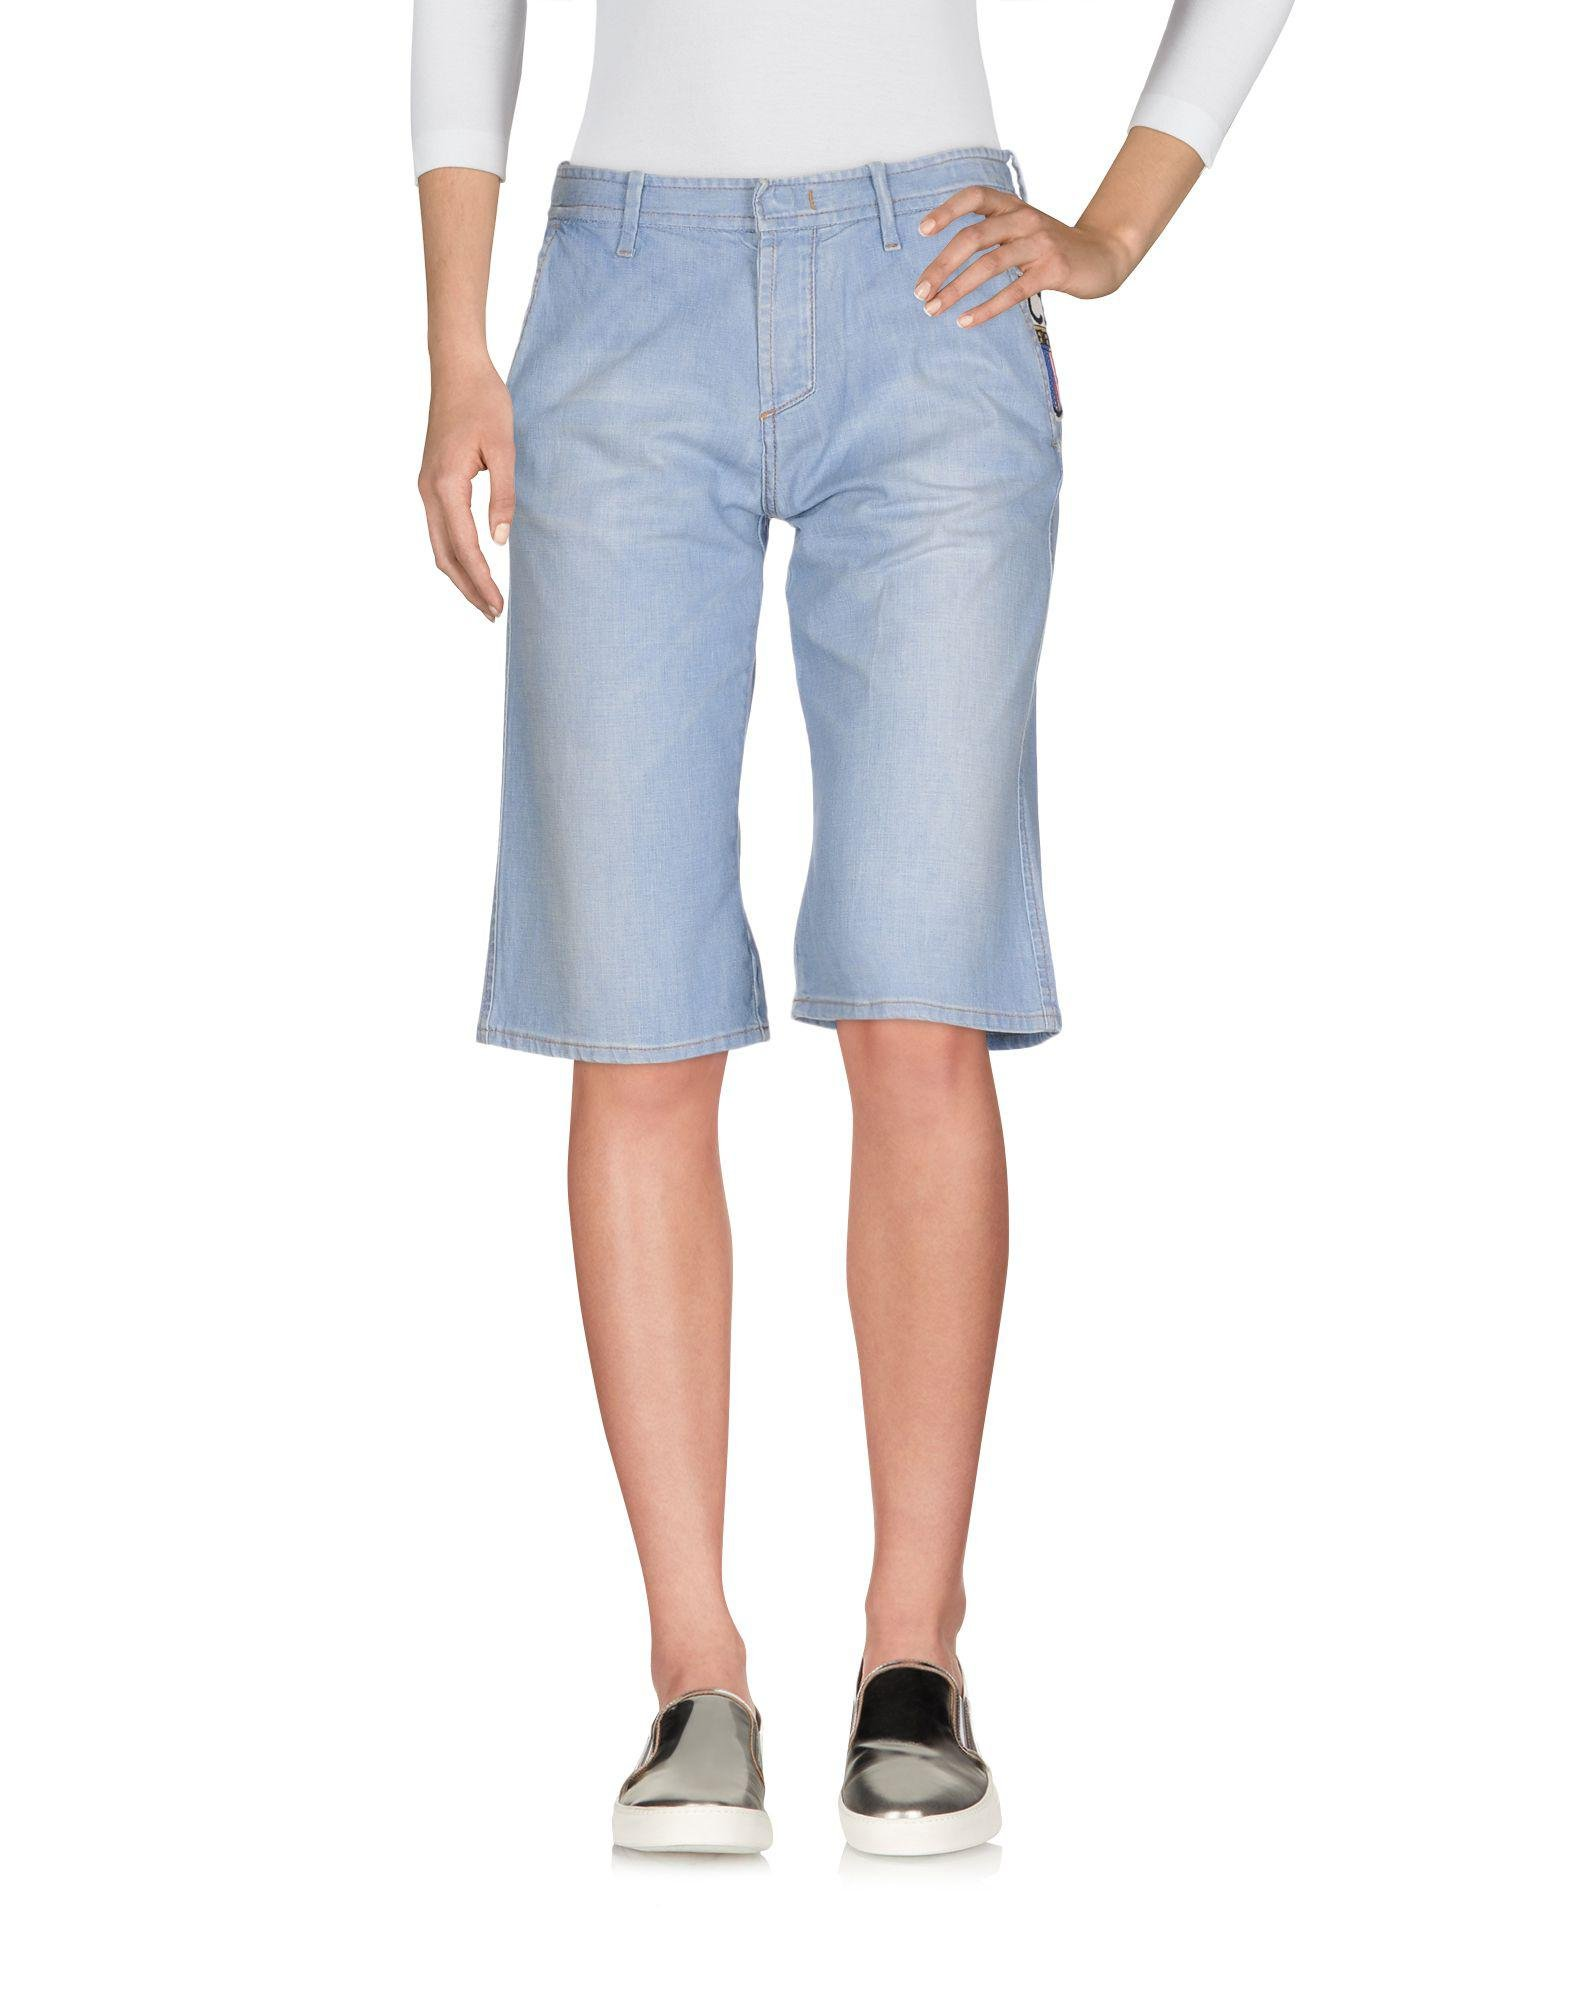 Affordable DENIM - Denim bermudas Iceberg For Cheap For Sale Discount In China eELuCYp